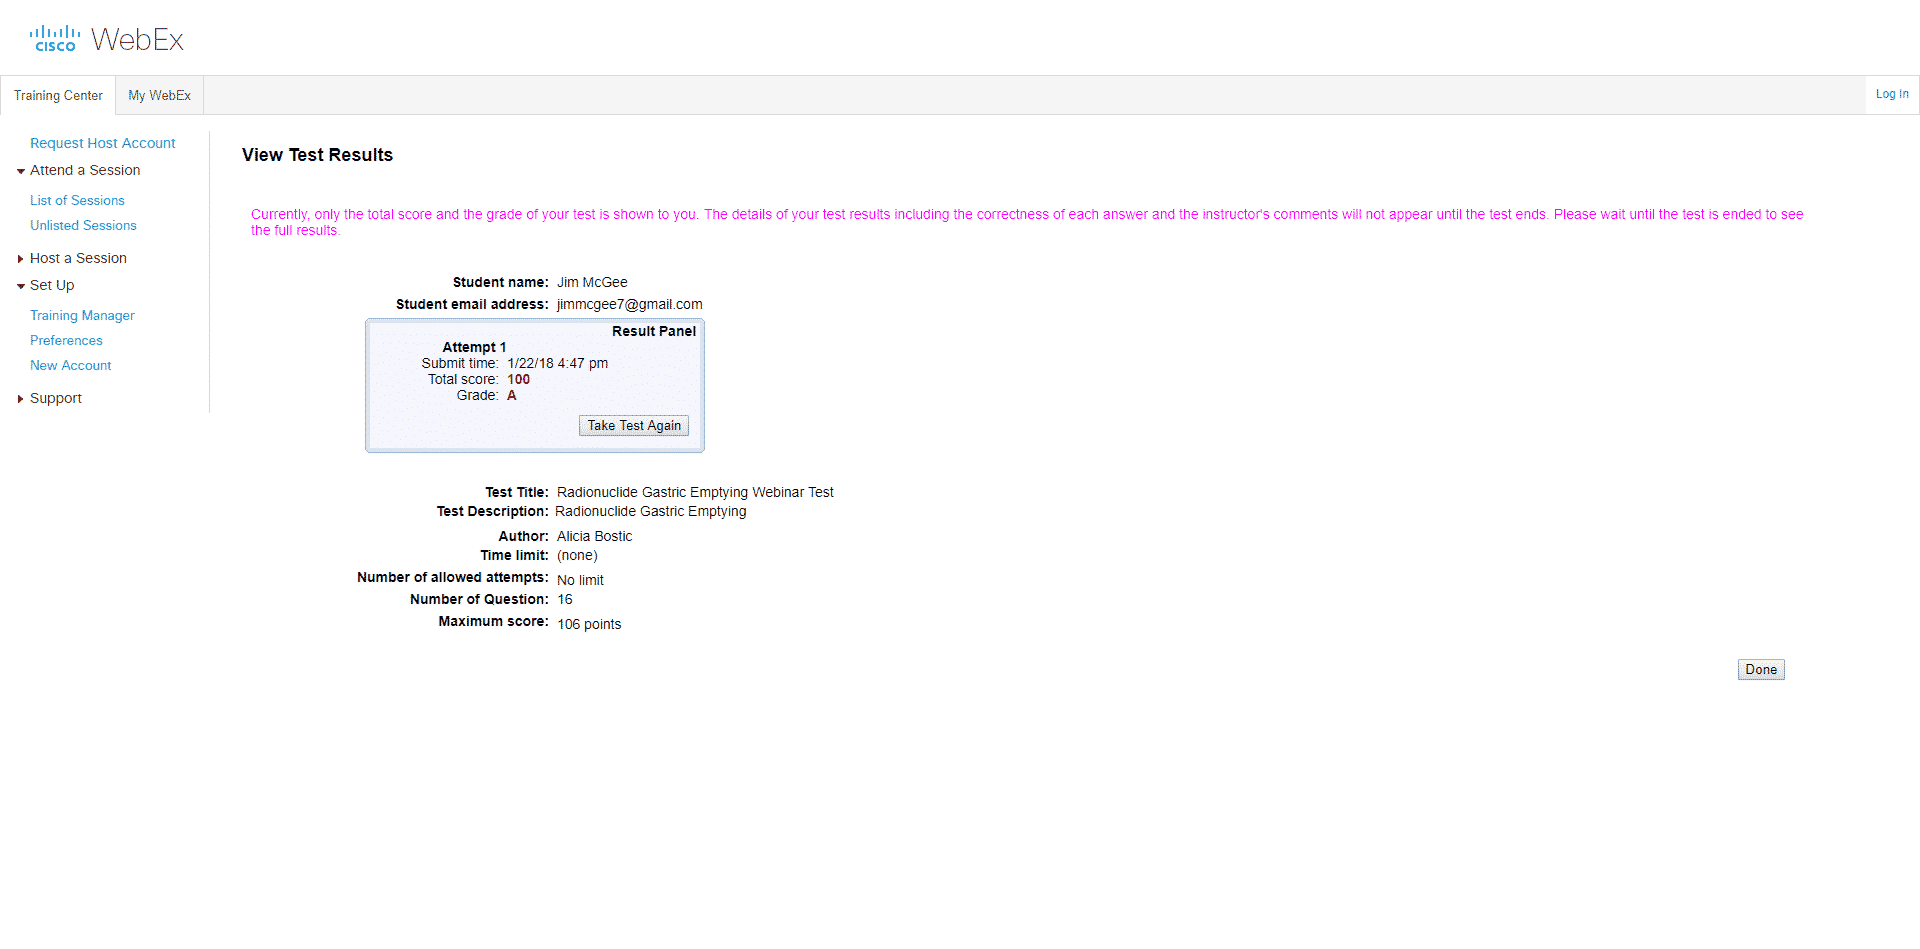 C:\Users\Owner\Dropbox\_NCR.com\WEBSITE\Content\Online CEs\2018 Revision\BC Technical\Test Results Screen.png